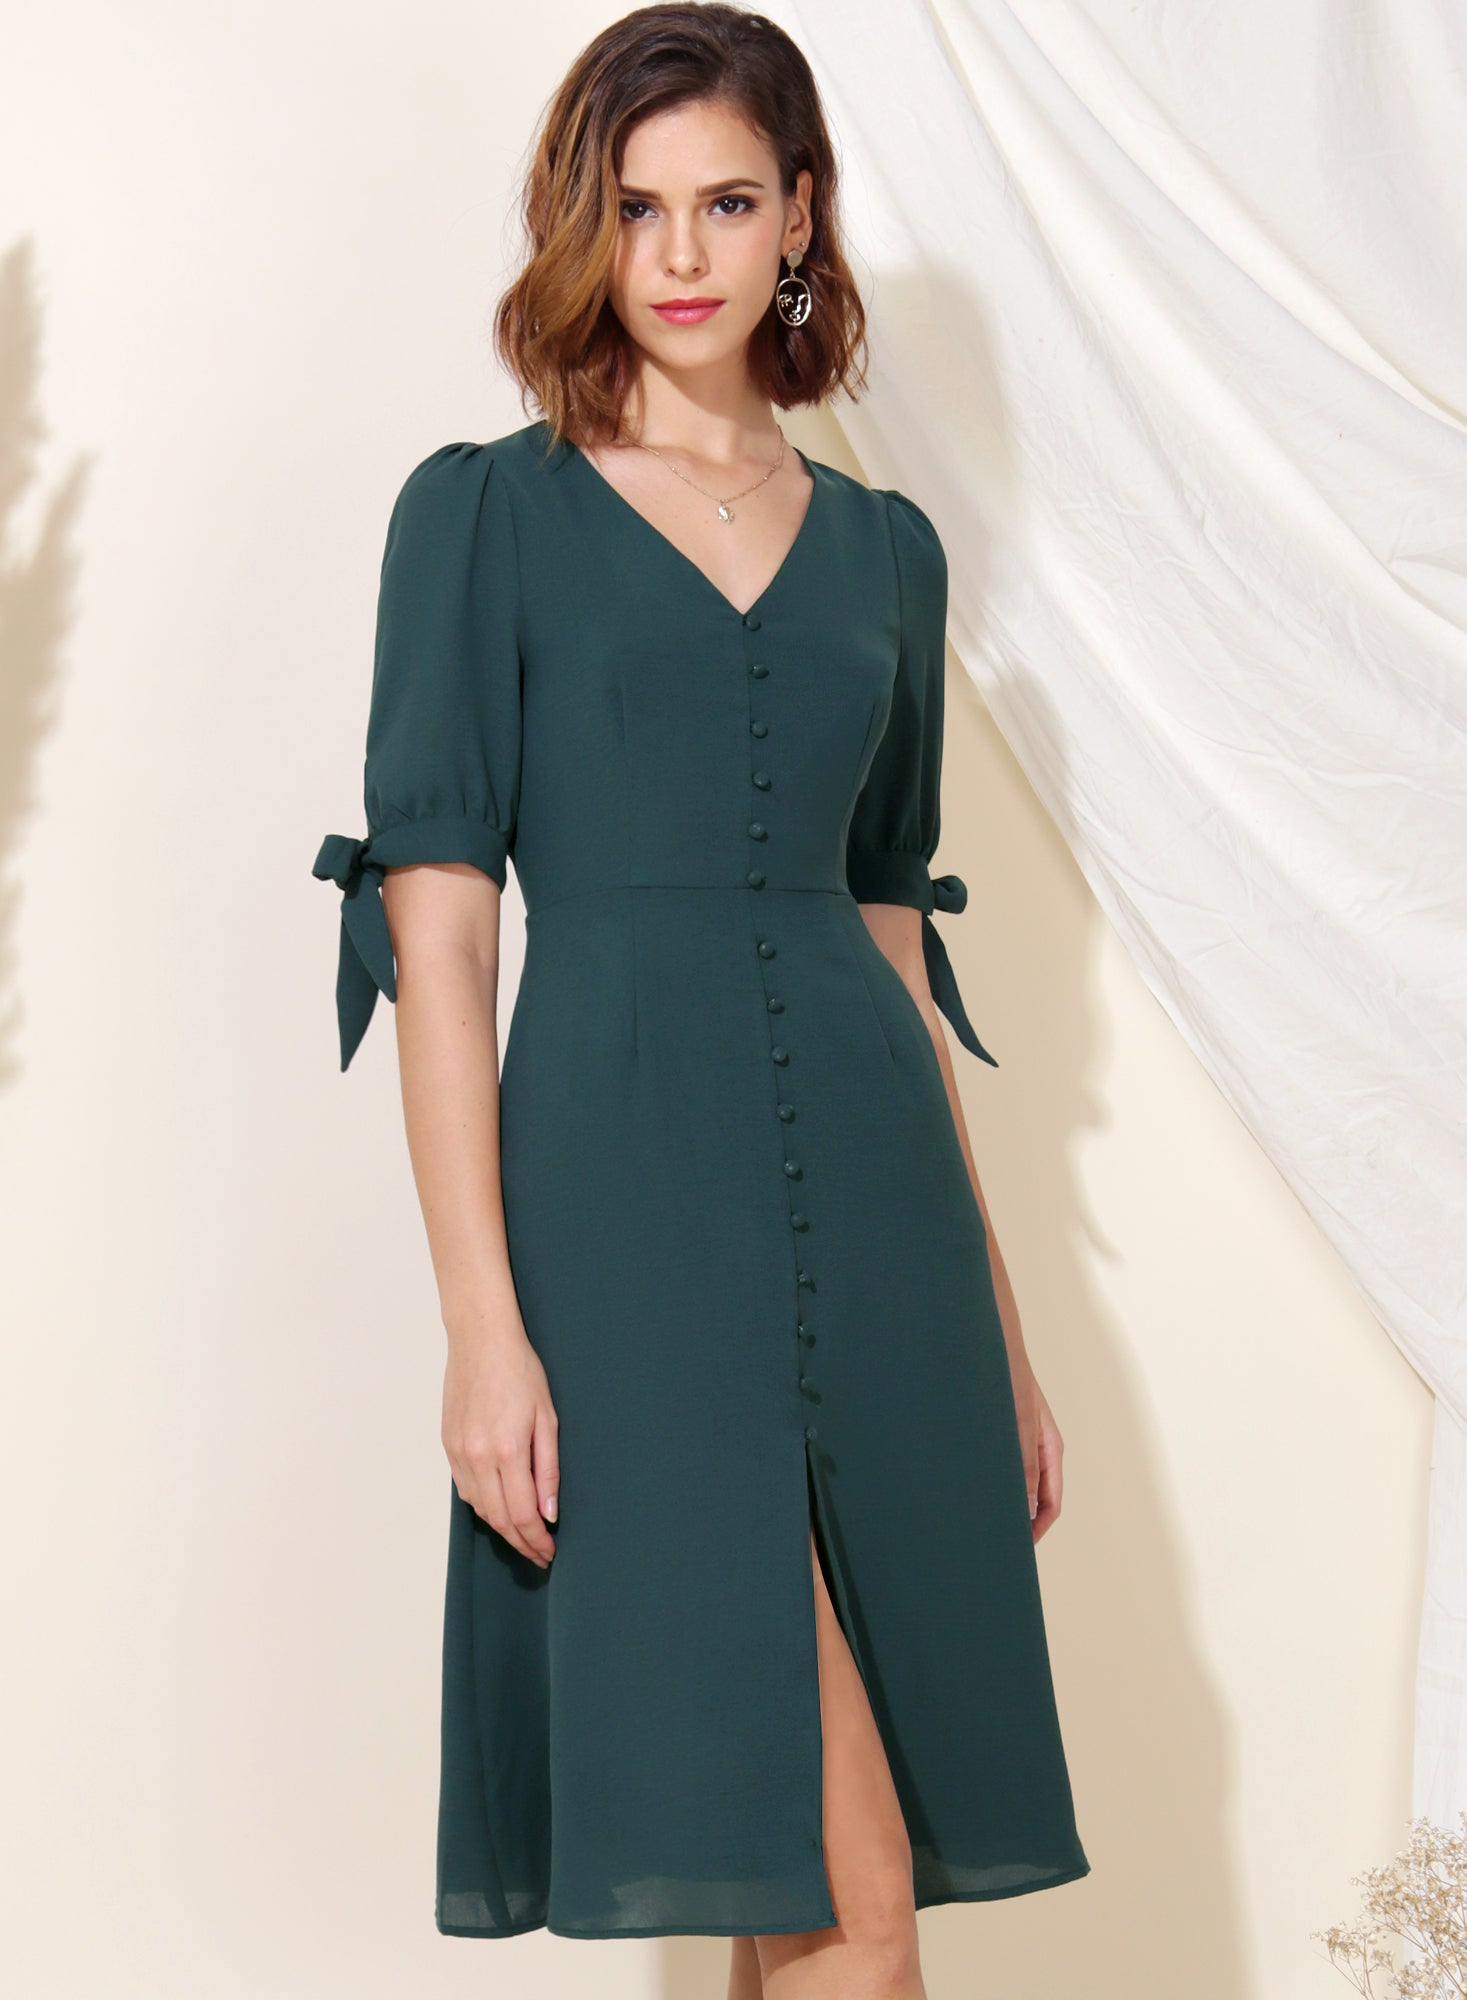 Liberty Tie Sleeves Midi Dress (Forest) at $ 45.00 only sold at And Well Dressed Online Fashion Store Singapore